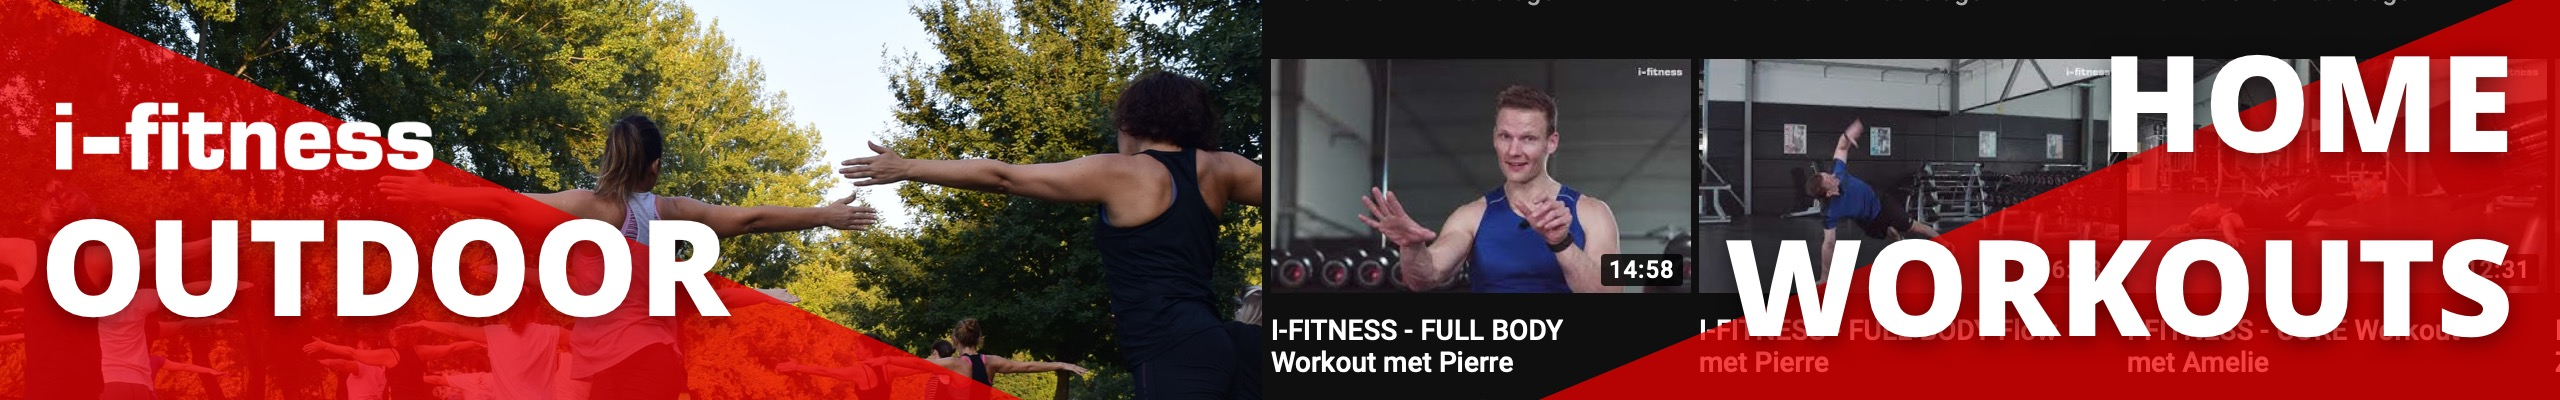 Ifitness outdoor homeworkout banner 2x